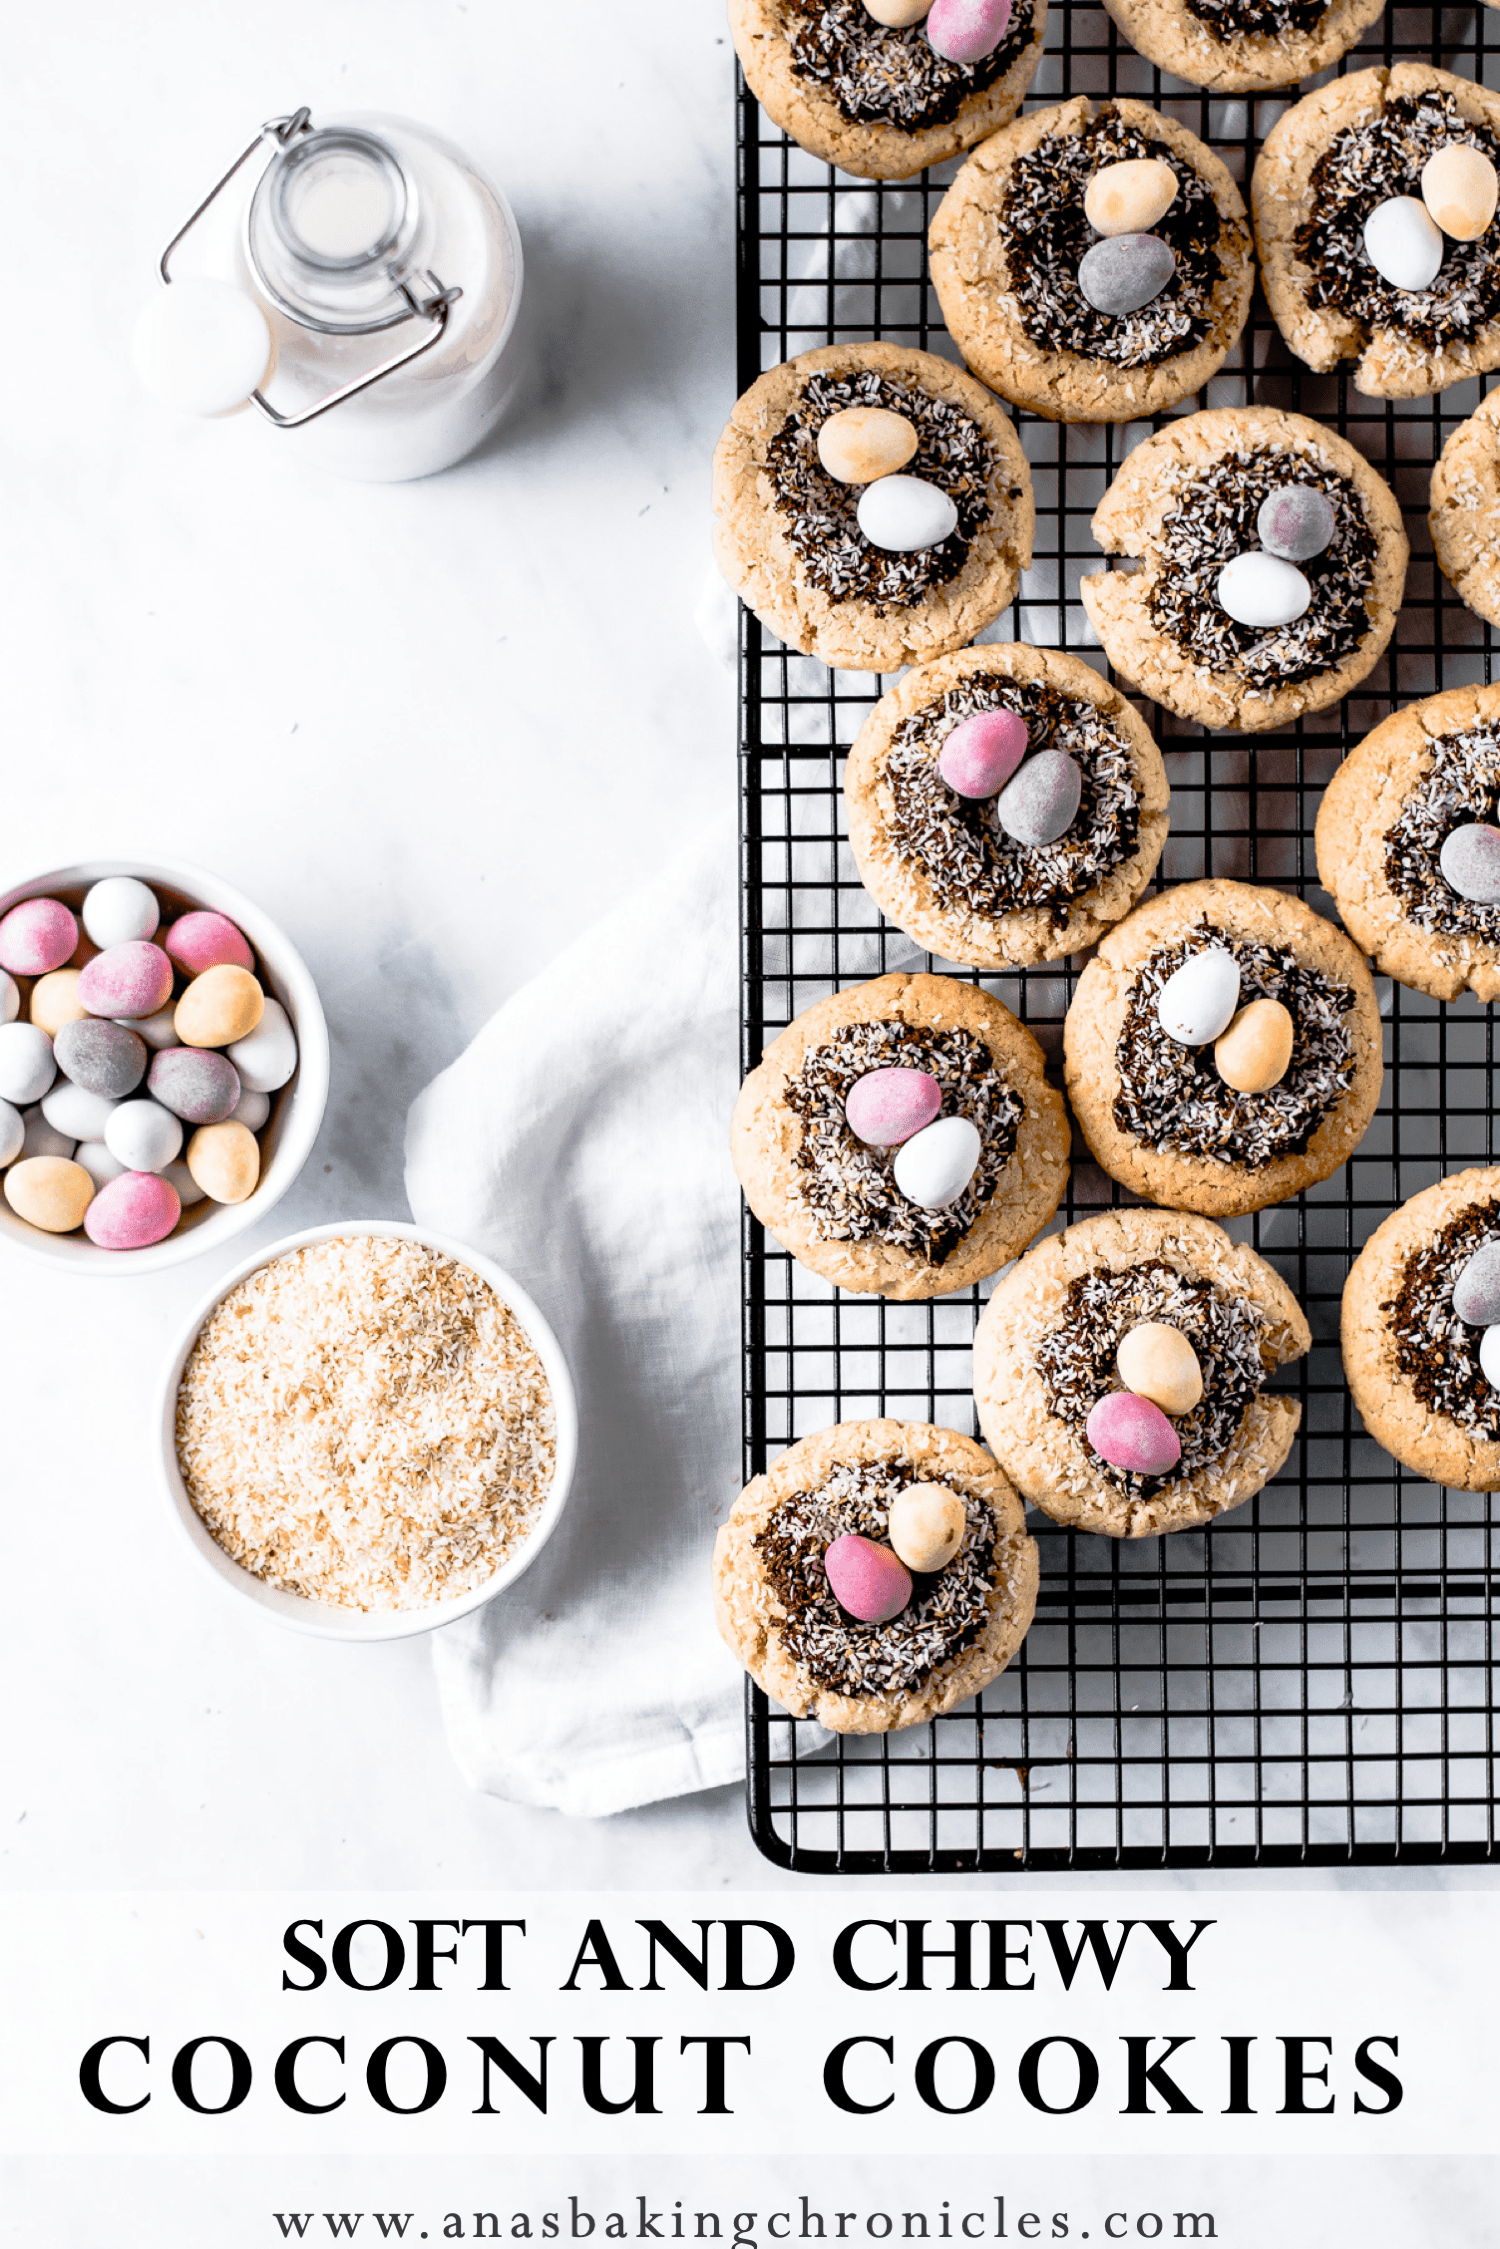 Crispy on the outside, but soft and chewy on the inside, these coconut cookies with chocolate coconut nests are the perfect thing for Easter!⎪www.anasbakingchronicles.com